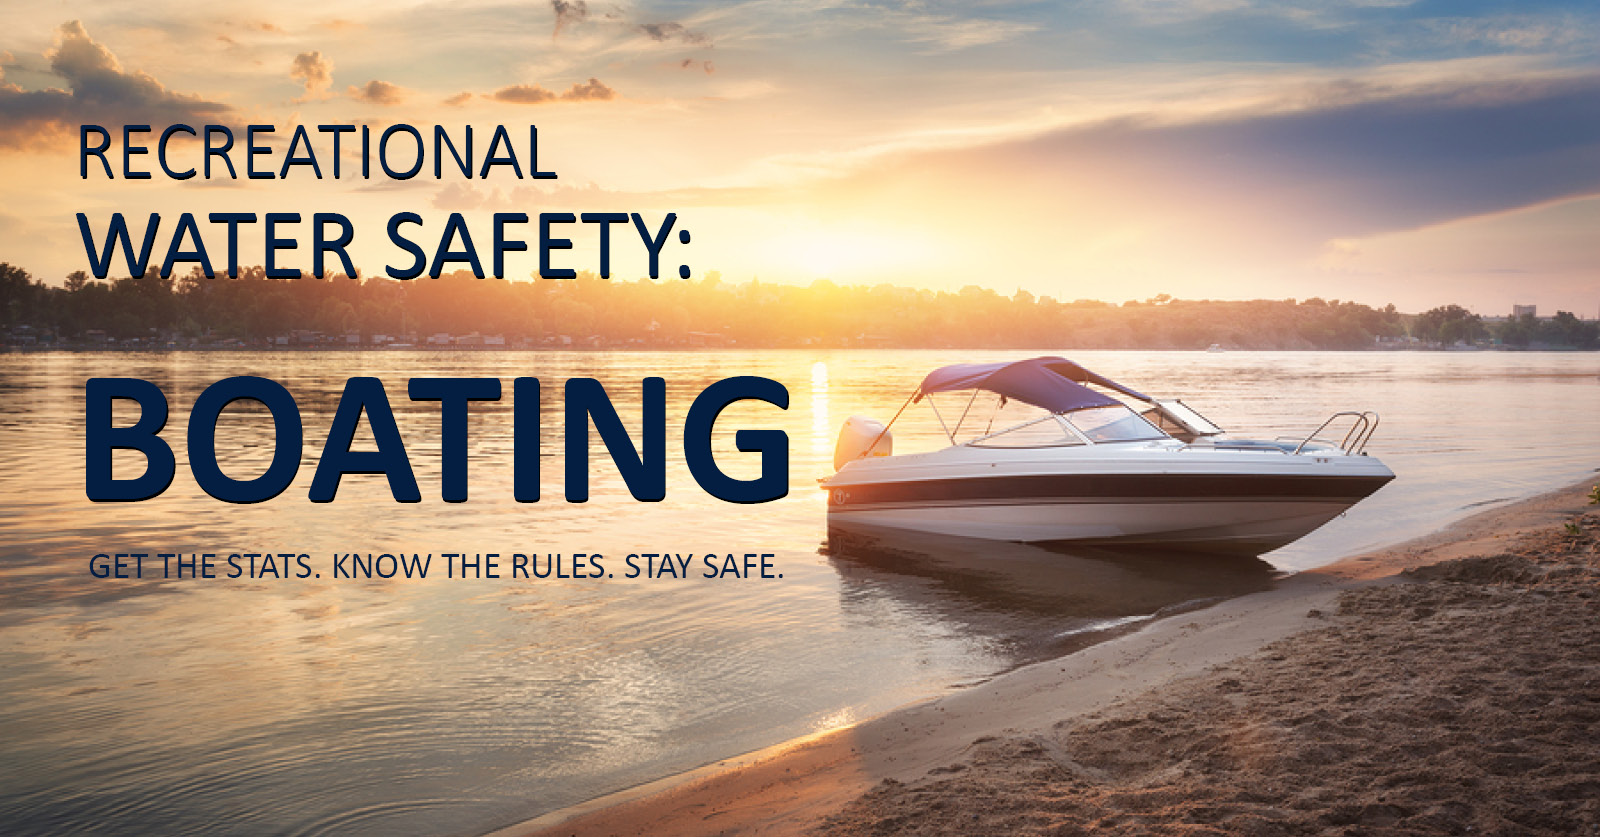 Recreational Water Safety: Boating